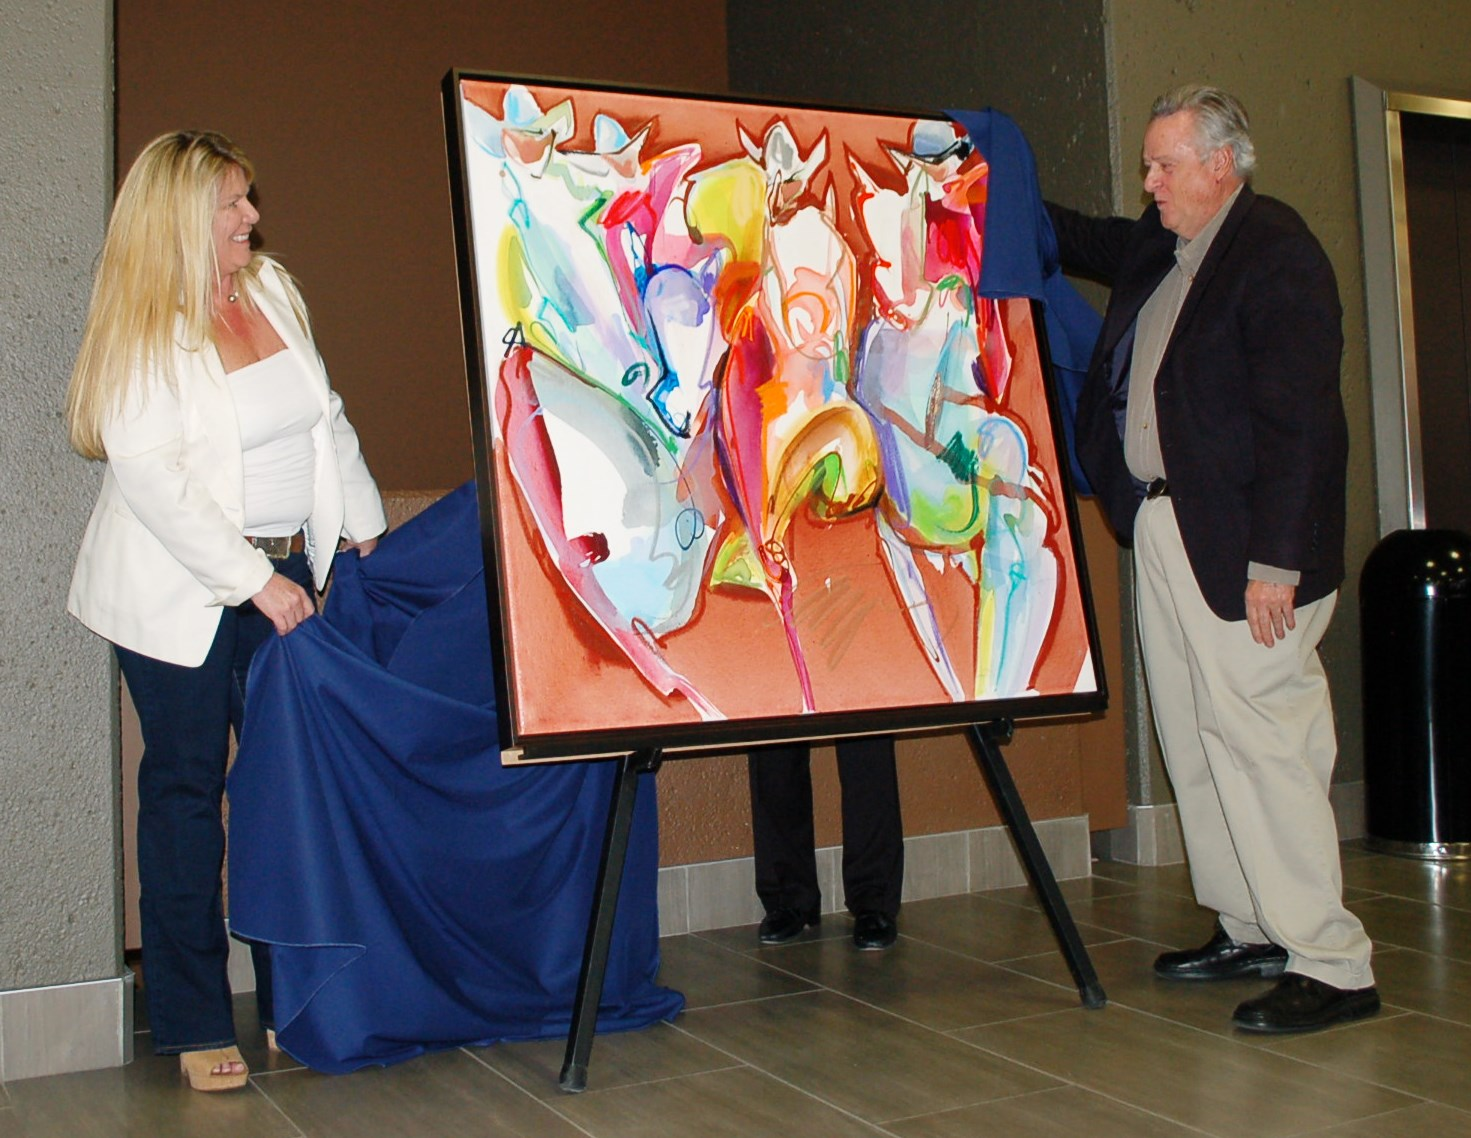 Blazing Saddles painting unveiling